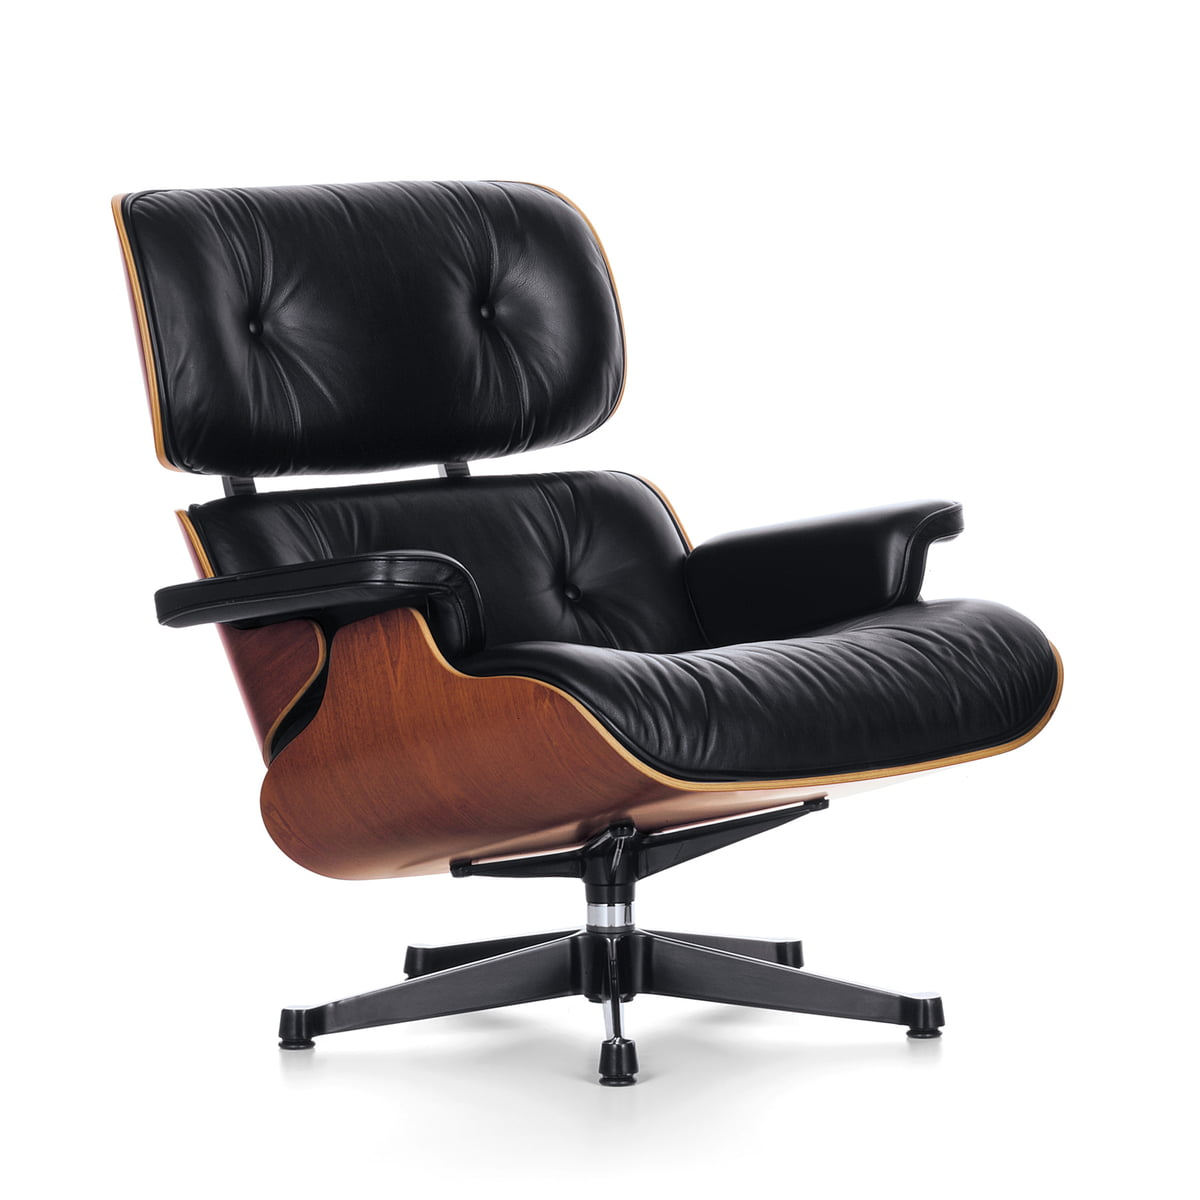 Vitra lounge chair en merisier for Vitra lounge chair nachbau